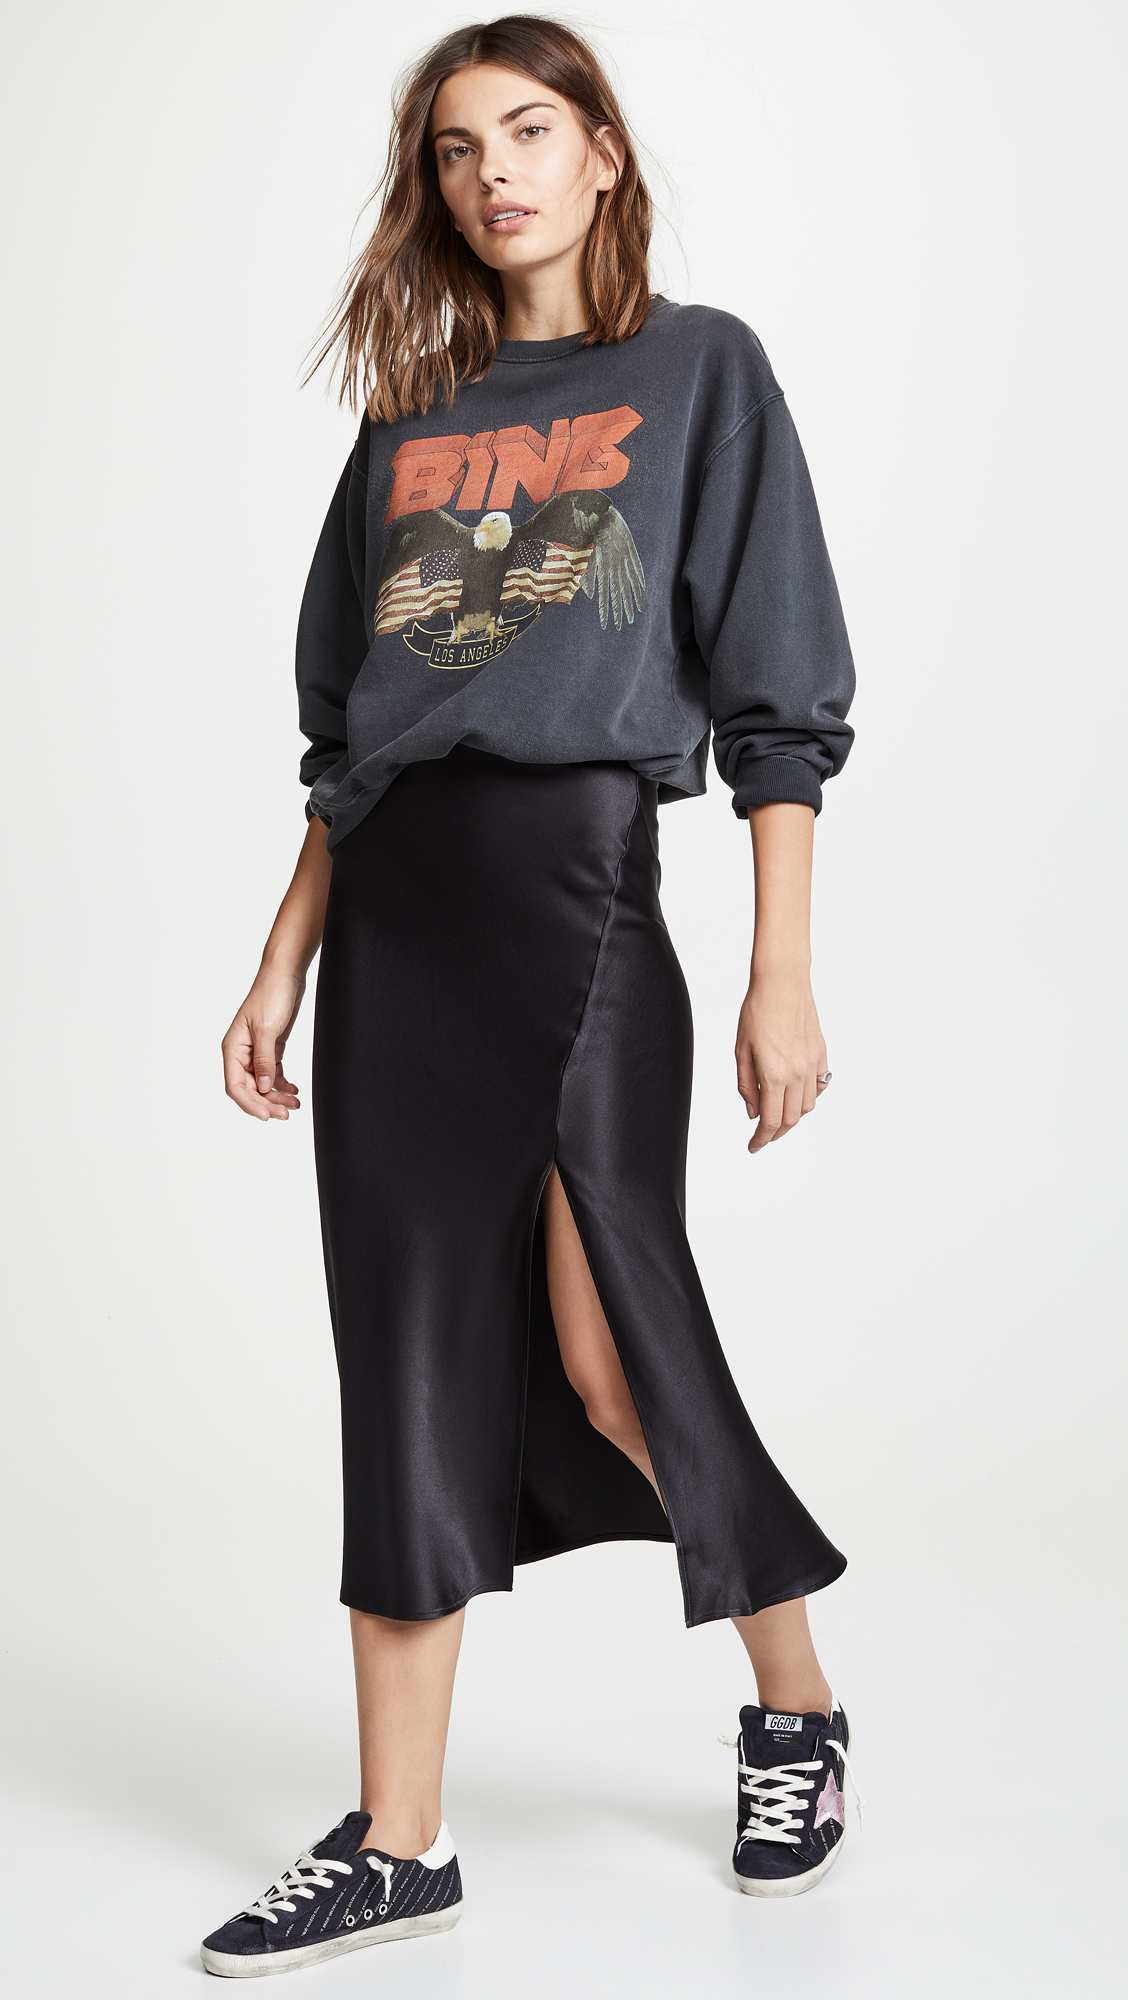 Silk Skirts & Oversized Sweaters -